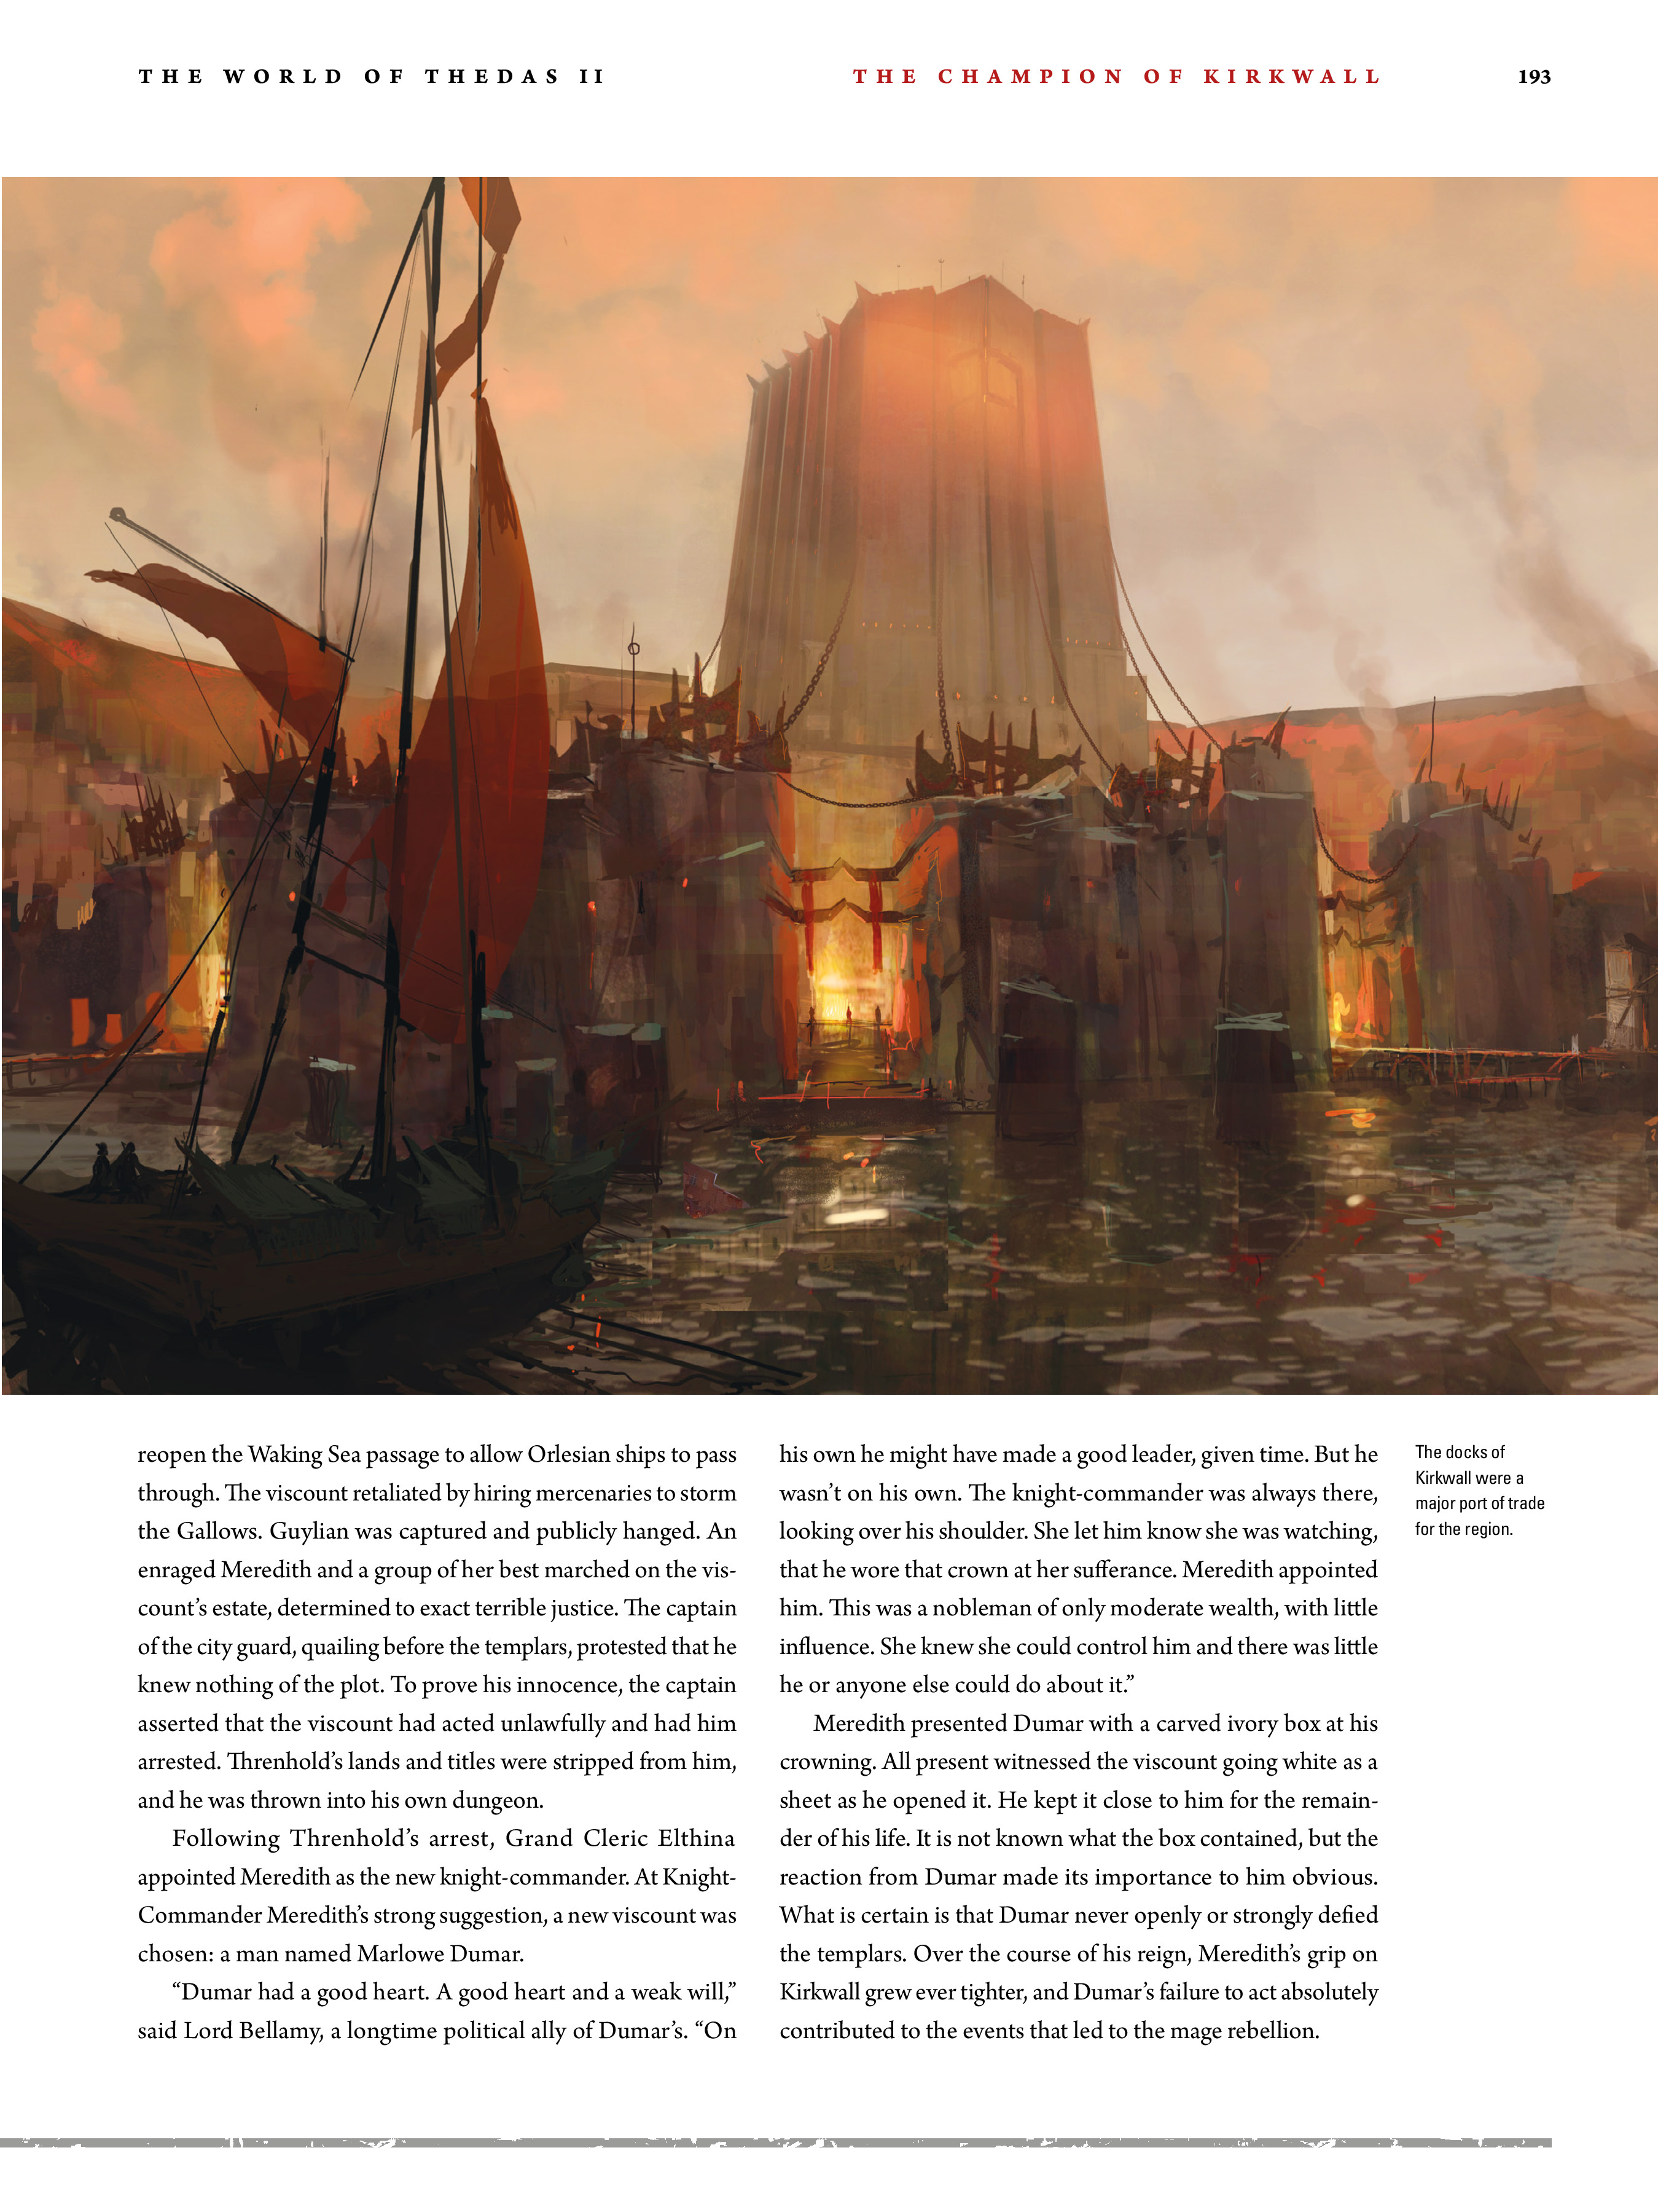 Read online Dragon Age: The World of Thedas comic -  Issue # TPB 2 - 188